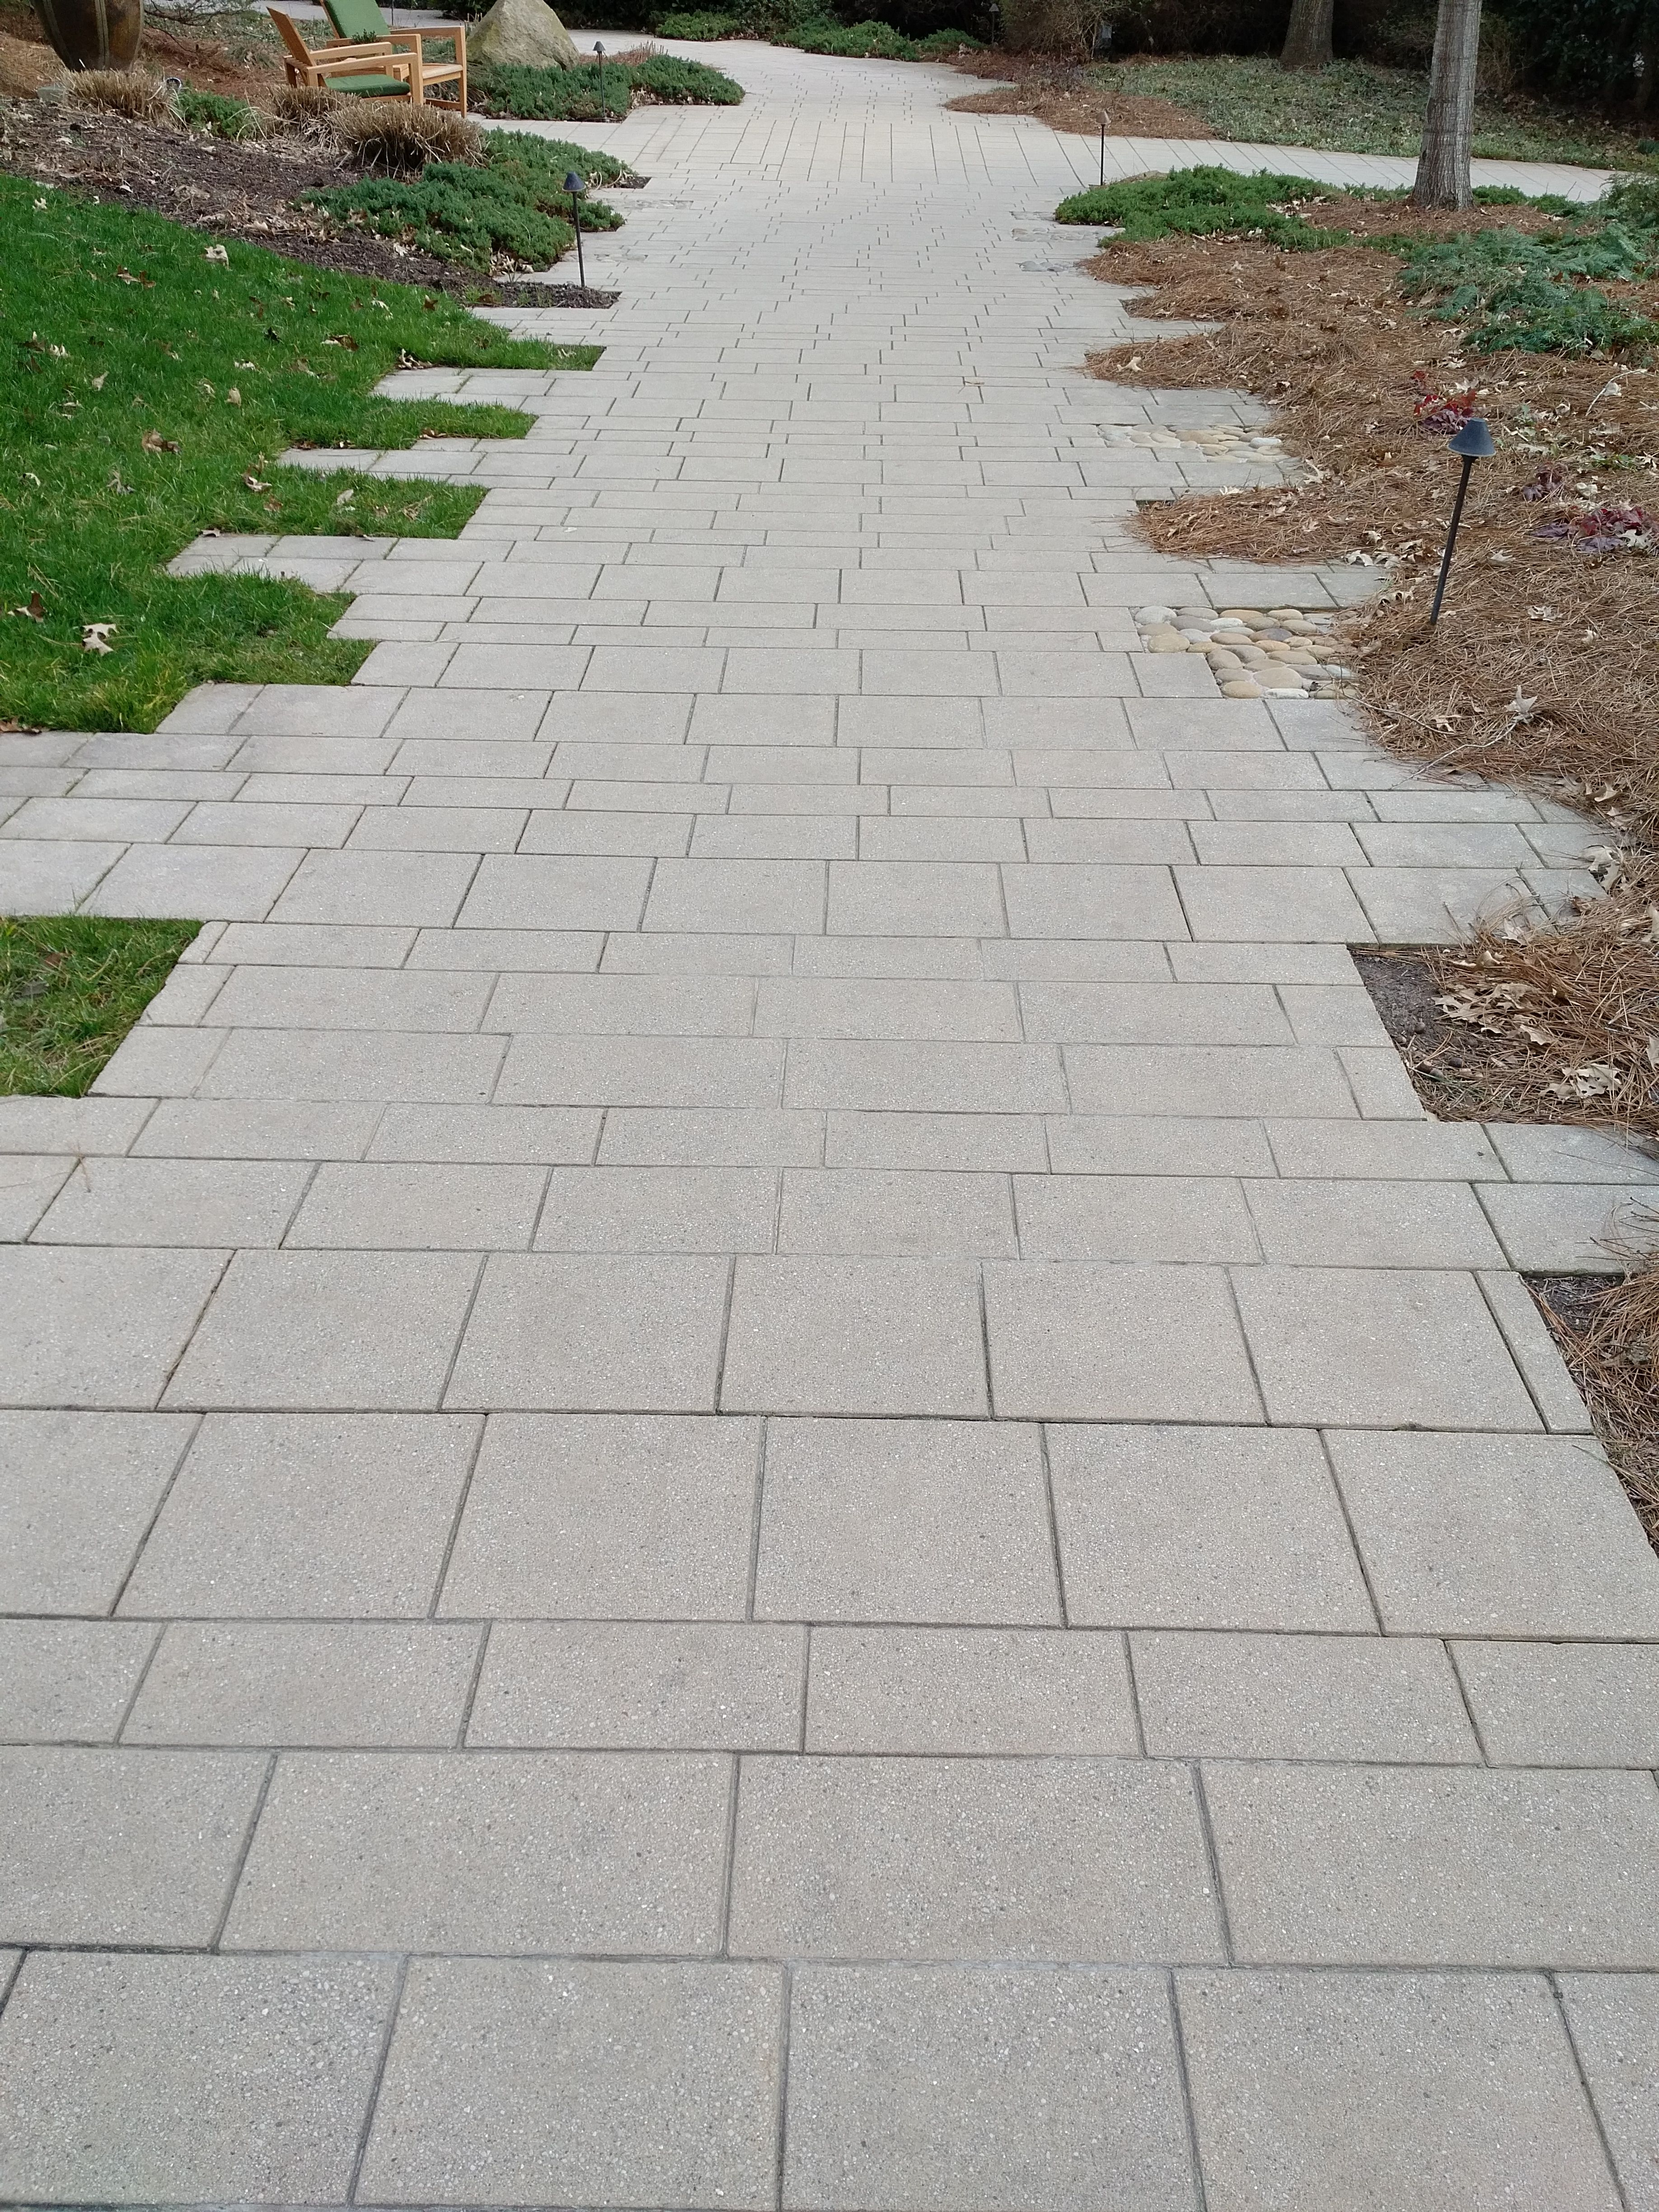 Scored Concrete Path At Umstead Hotel 2 2 17 Cary Nc Concrete Path Hardscape Old Houses